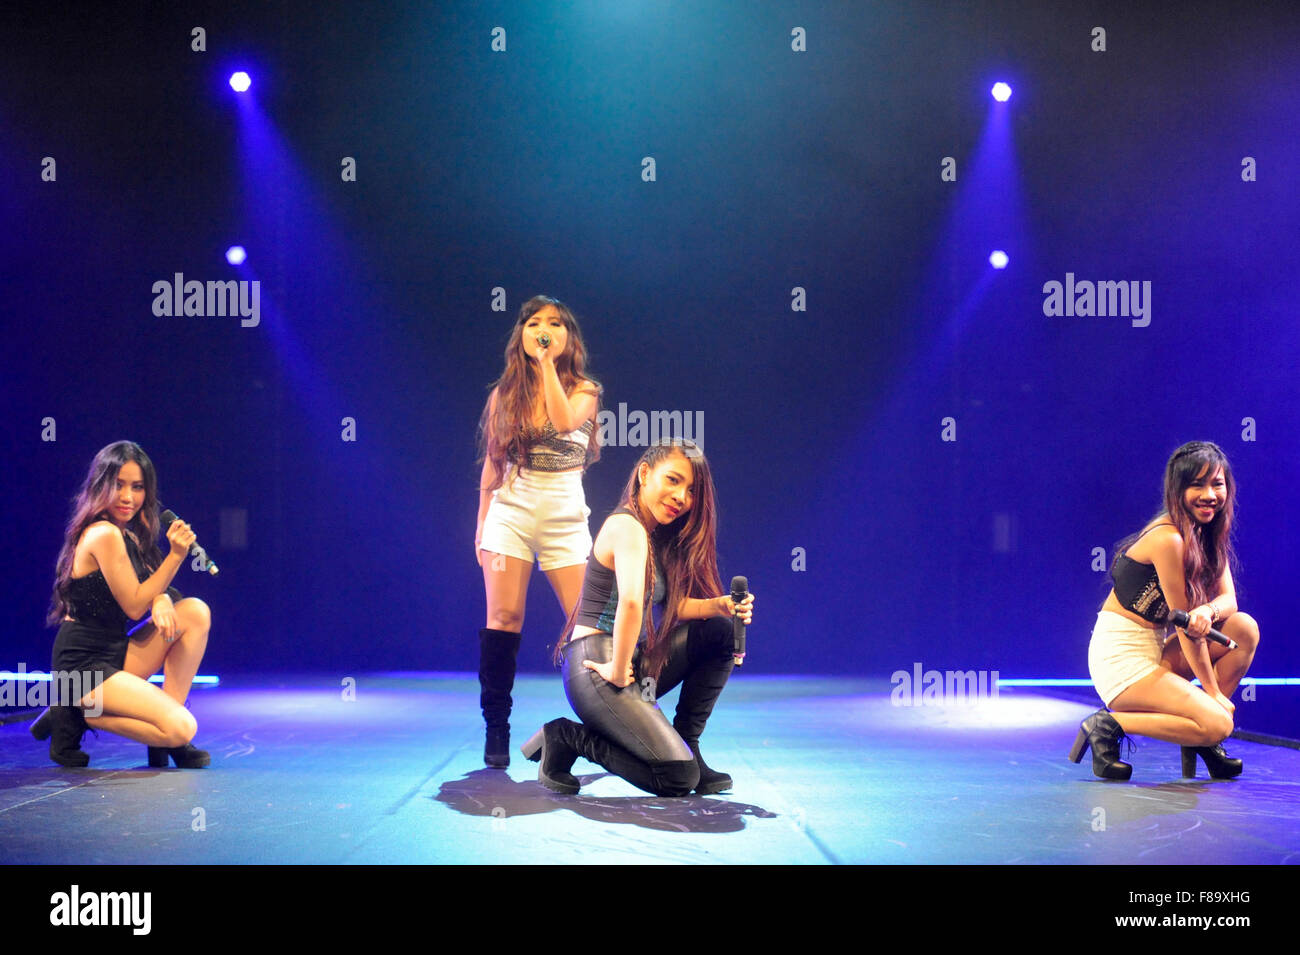 4th Impact perform Bang Bang on stage at Clothes Show Live, NEC, Birmingham, UK, 7th December 2015, after leaving - Stock Image